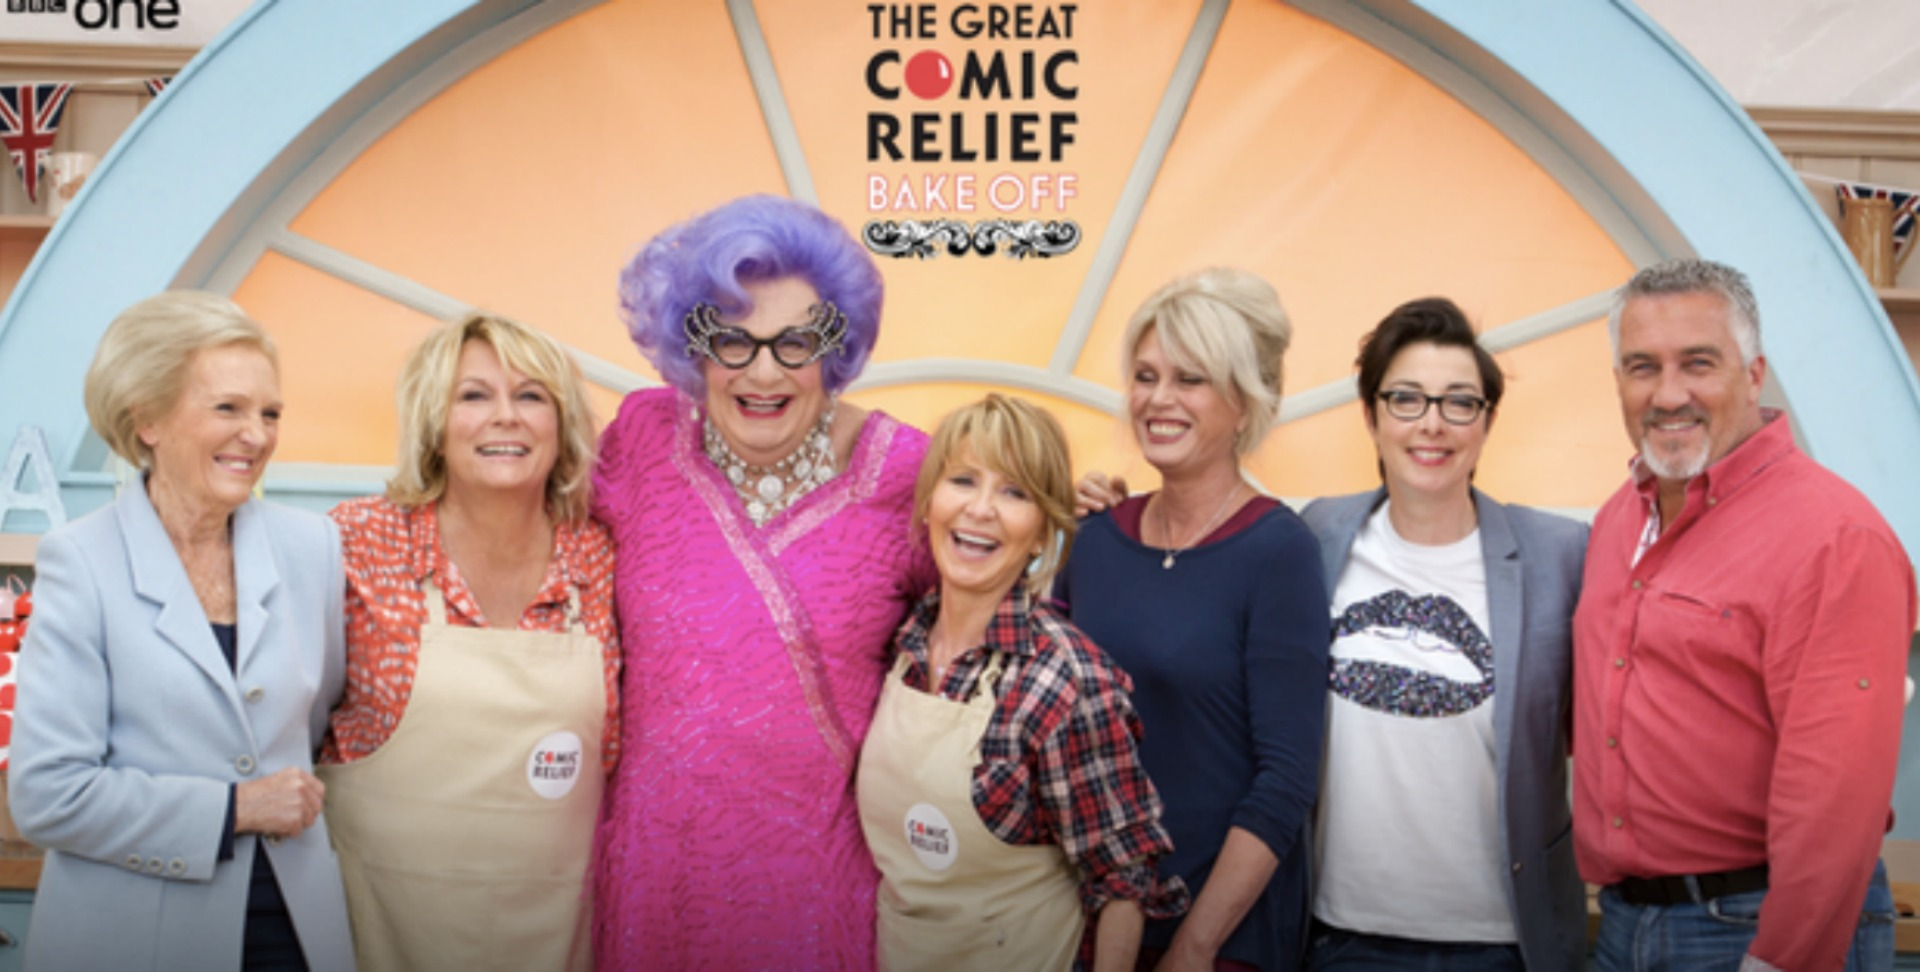 The Great Comic Relief Bake Off is giving us some really funny TV moments